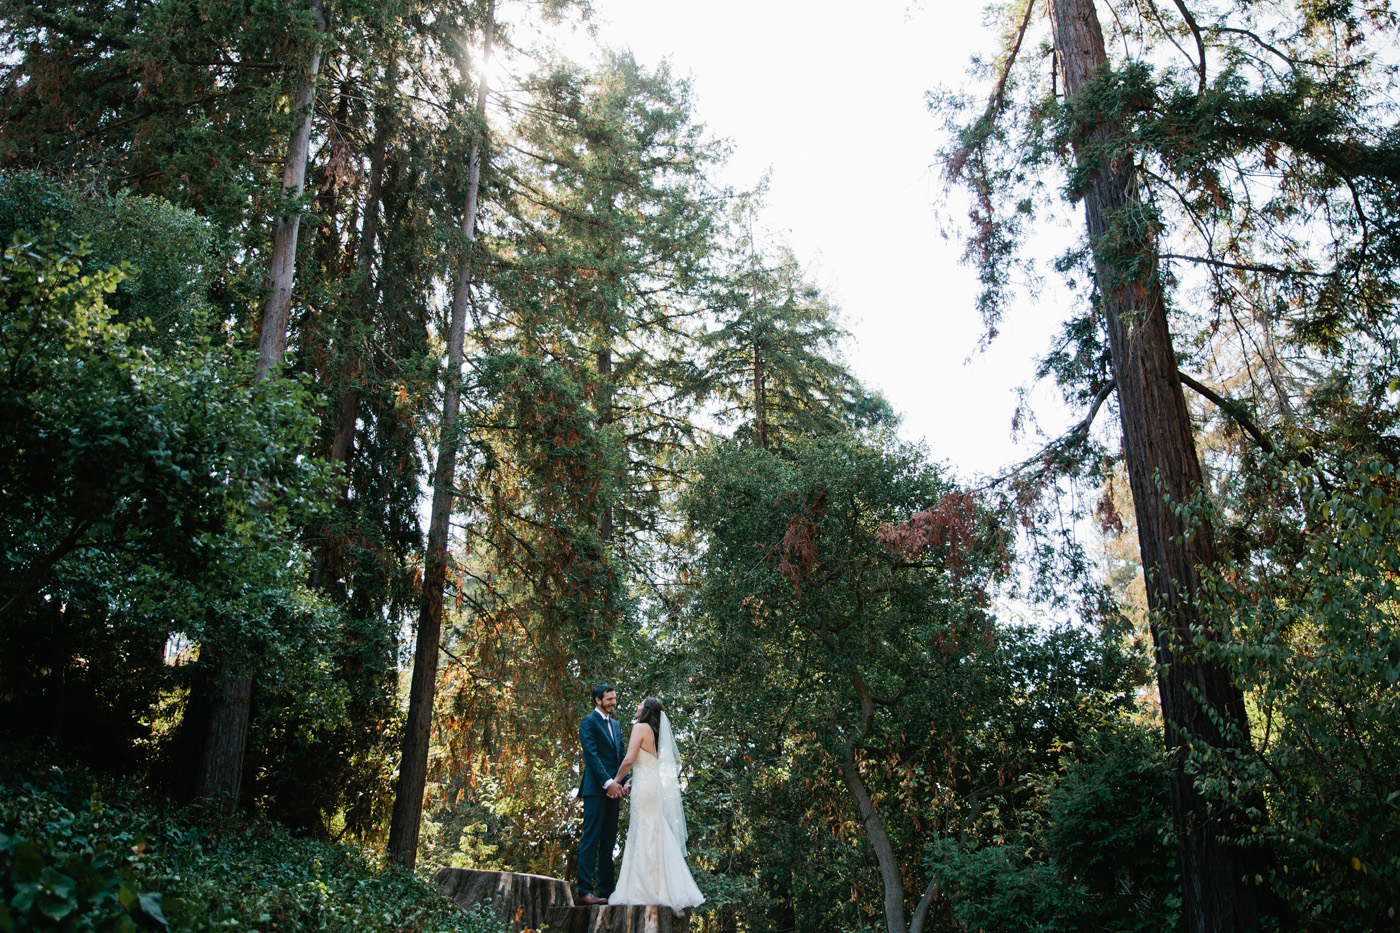 SanFranciscoWeddingPhotographer_020.JPG